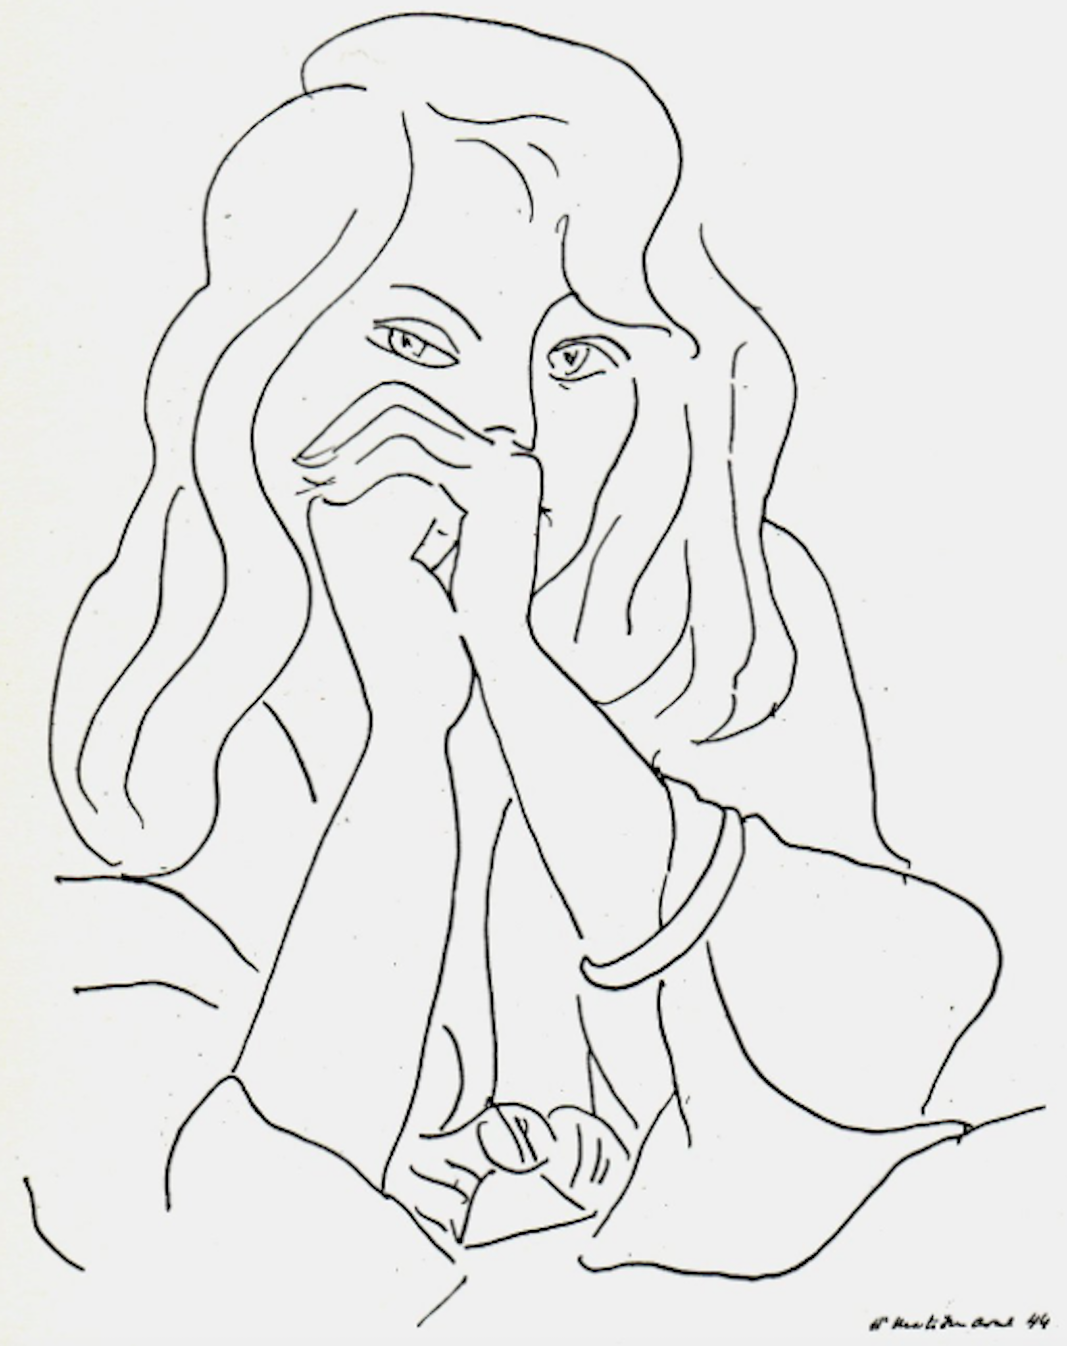 Matisse Contour Line Drawing : Build confidence in your drawing skills linda germain